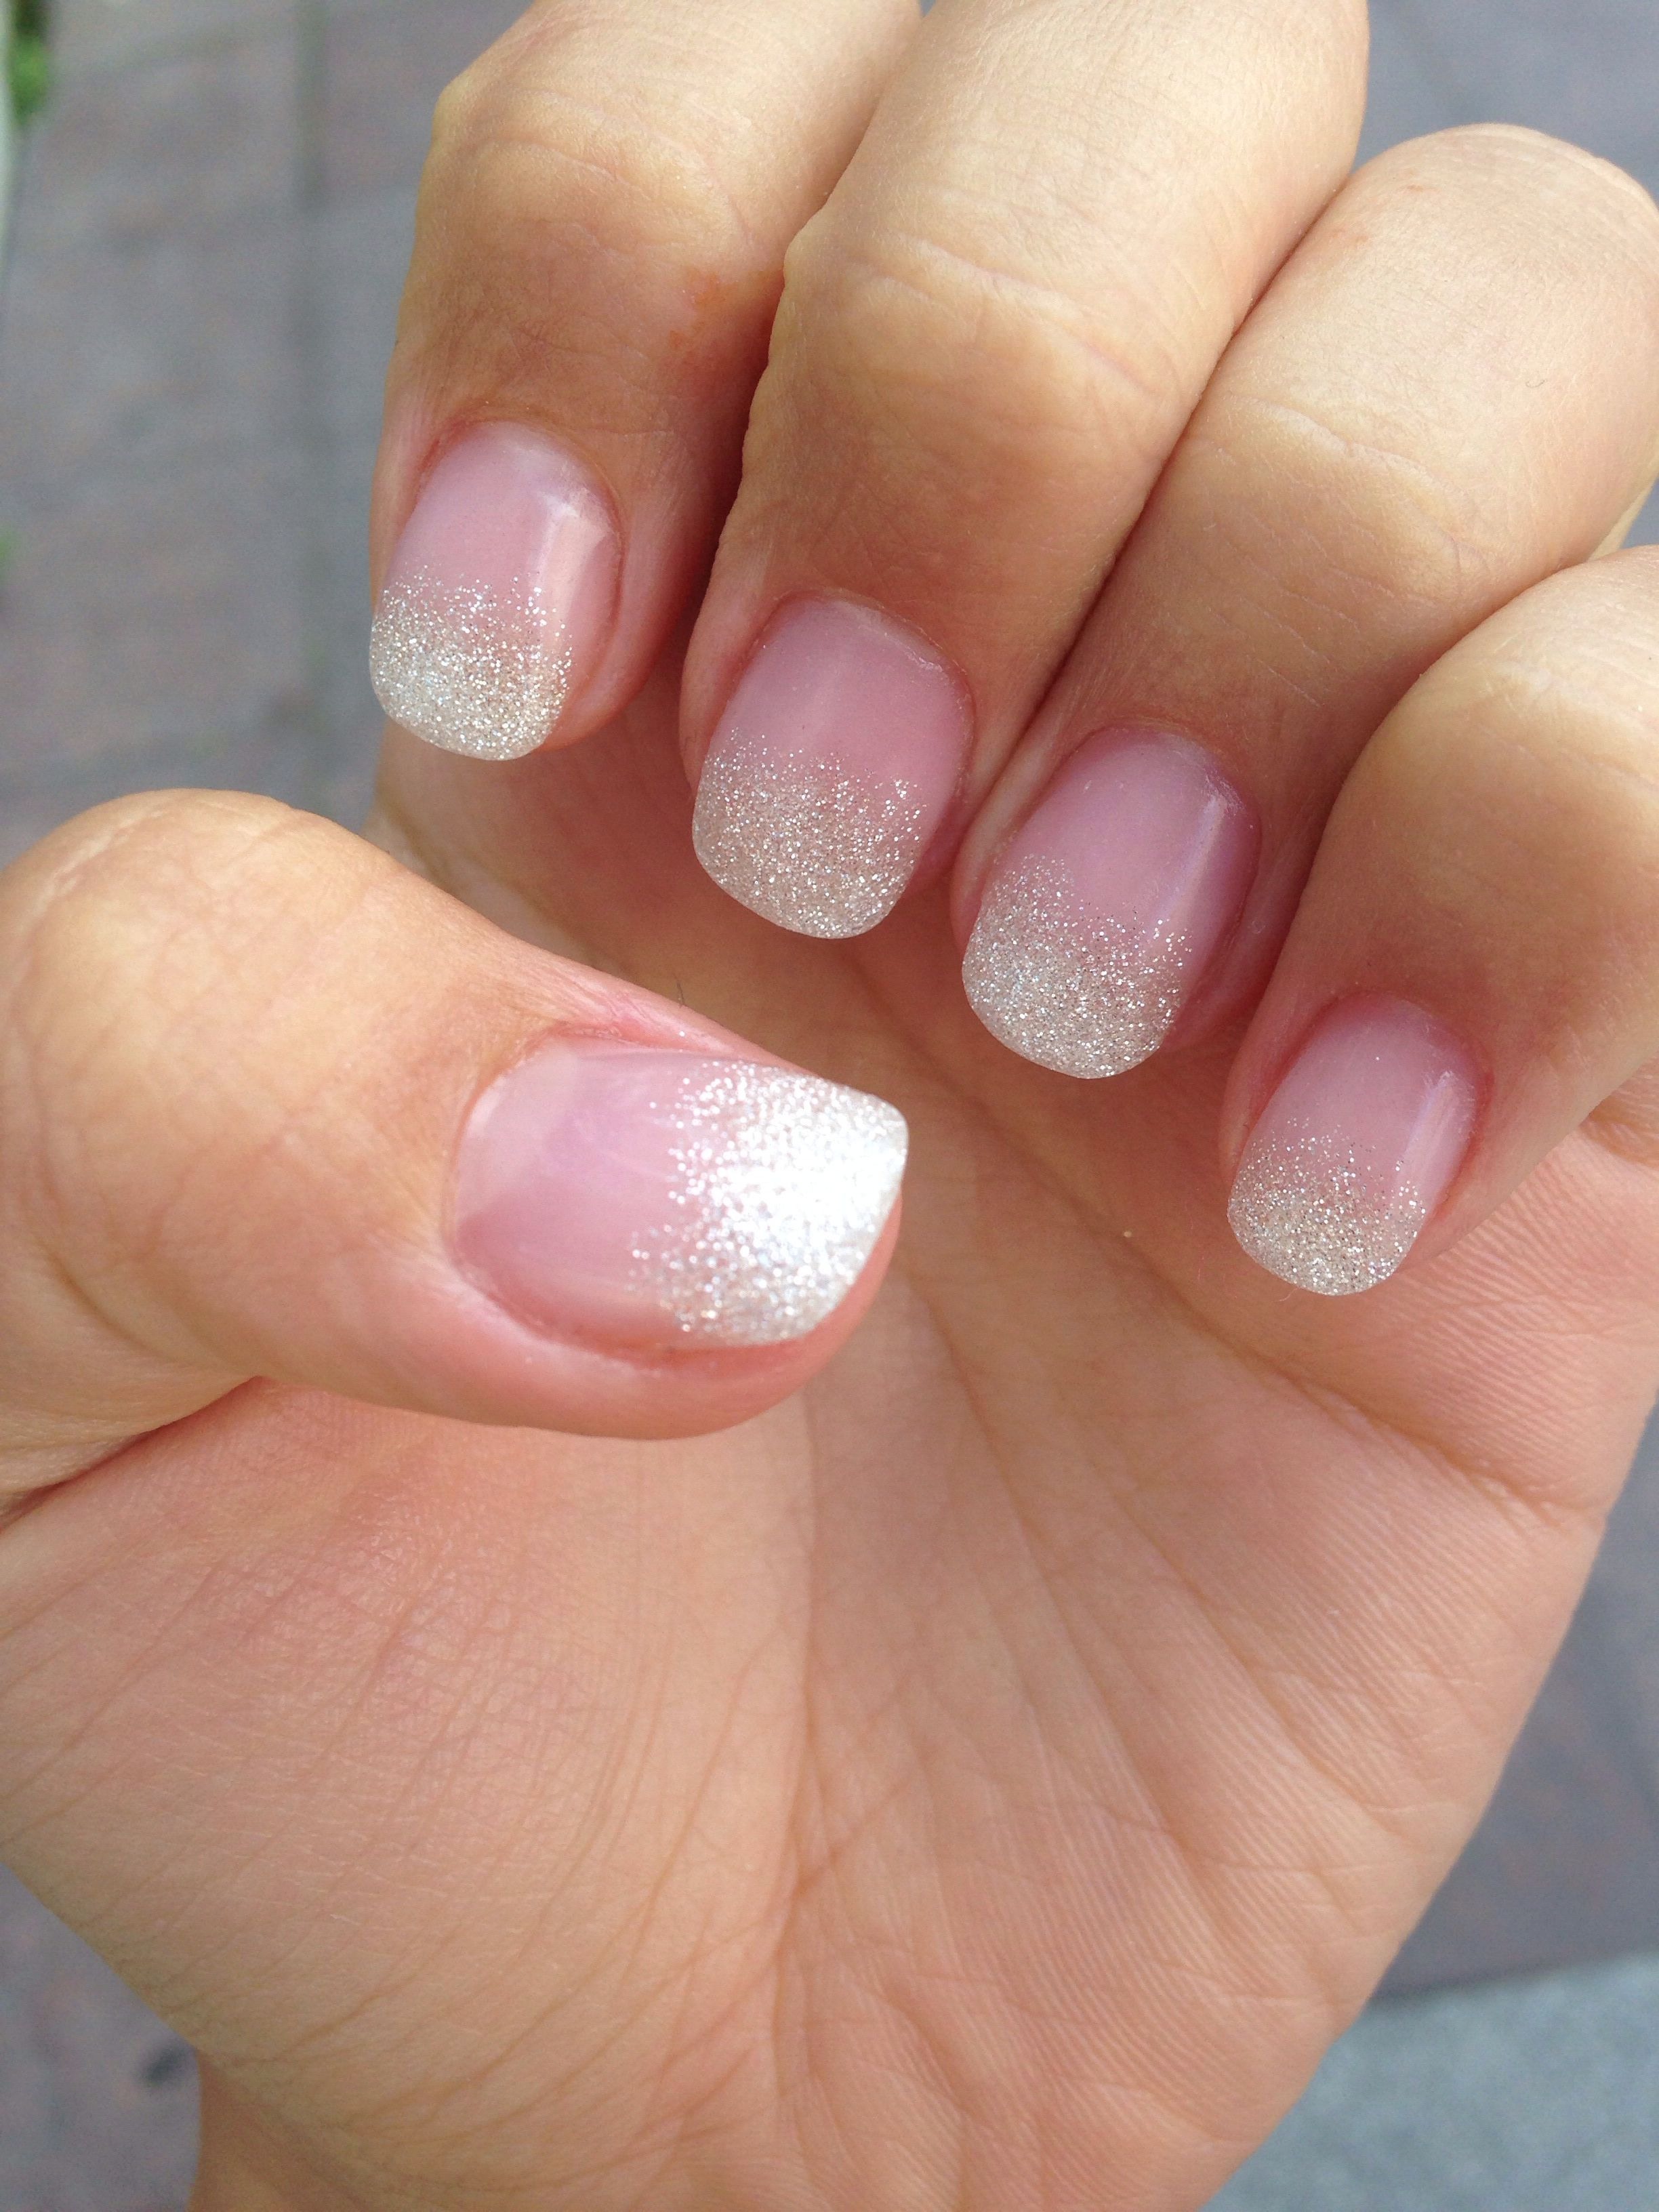 My first set of acryl nails, squoval shape, glitter faded french ...